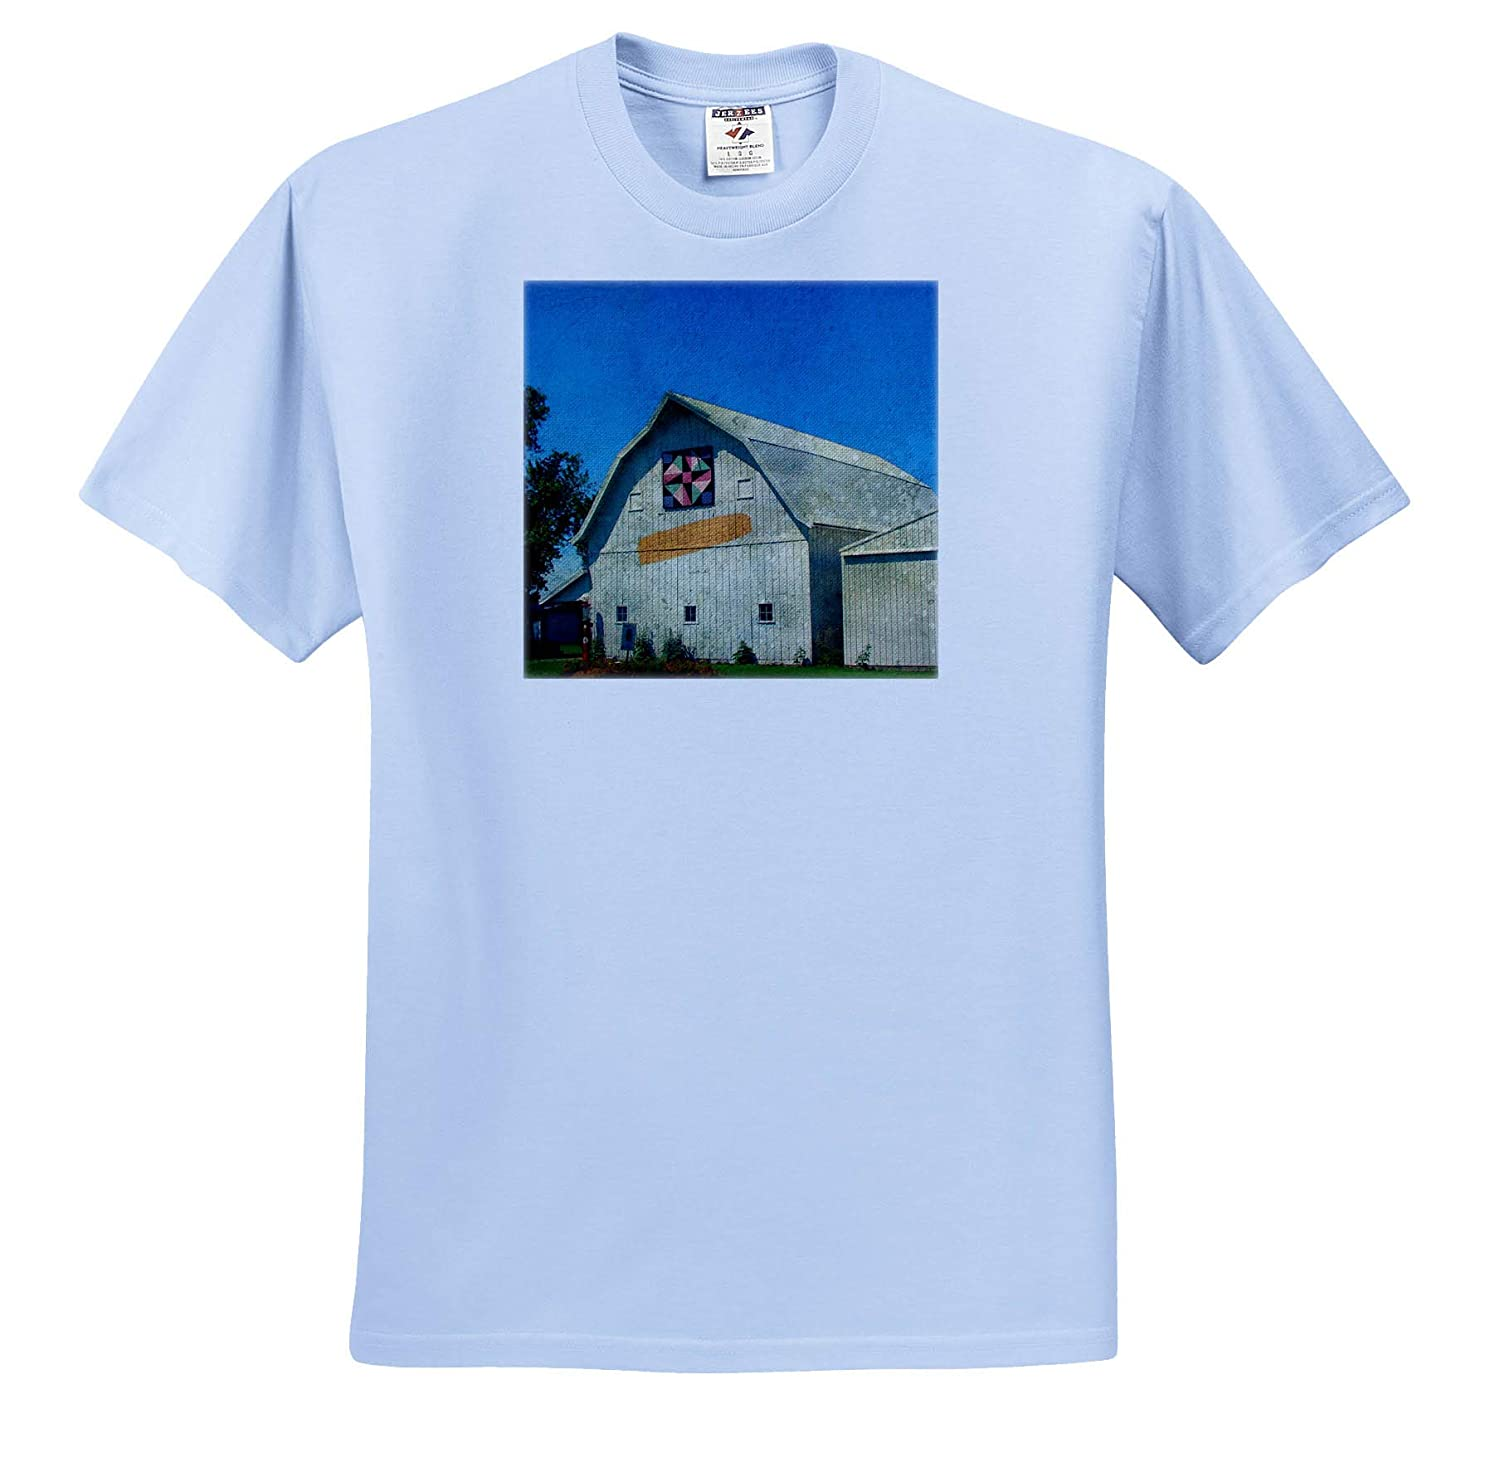 T-Shirts Barn with A Quilt and an Ear of Corn 3dRose Cassie Peters Barns